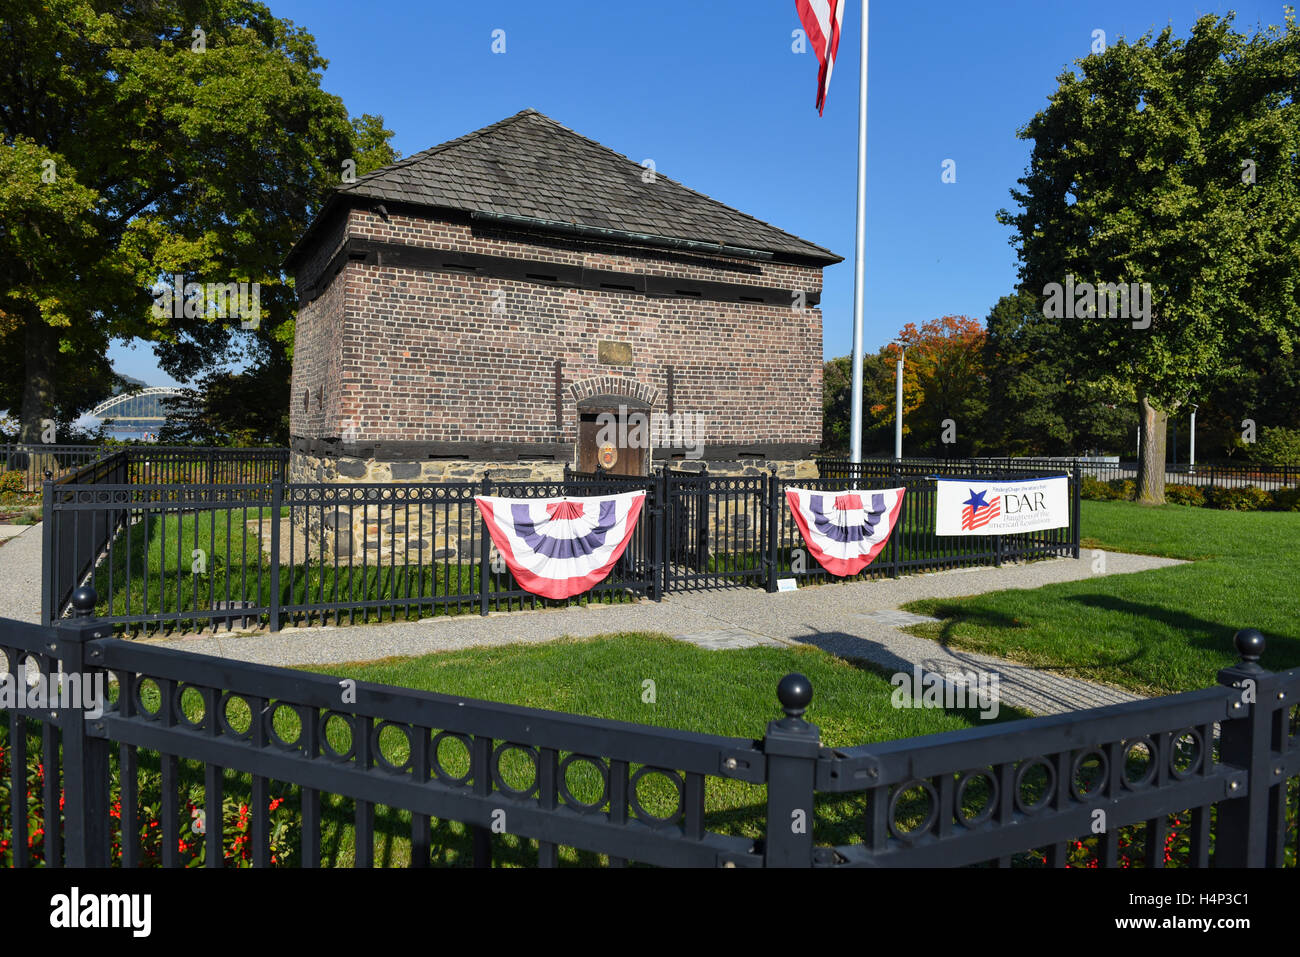 usa-pittsburgh-pa-pennsylvania-fort-pitt-blockhouse-in-point-state-H4P3C1.jpg